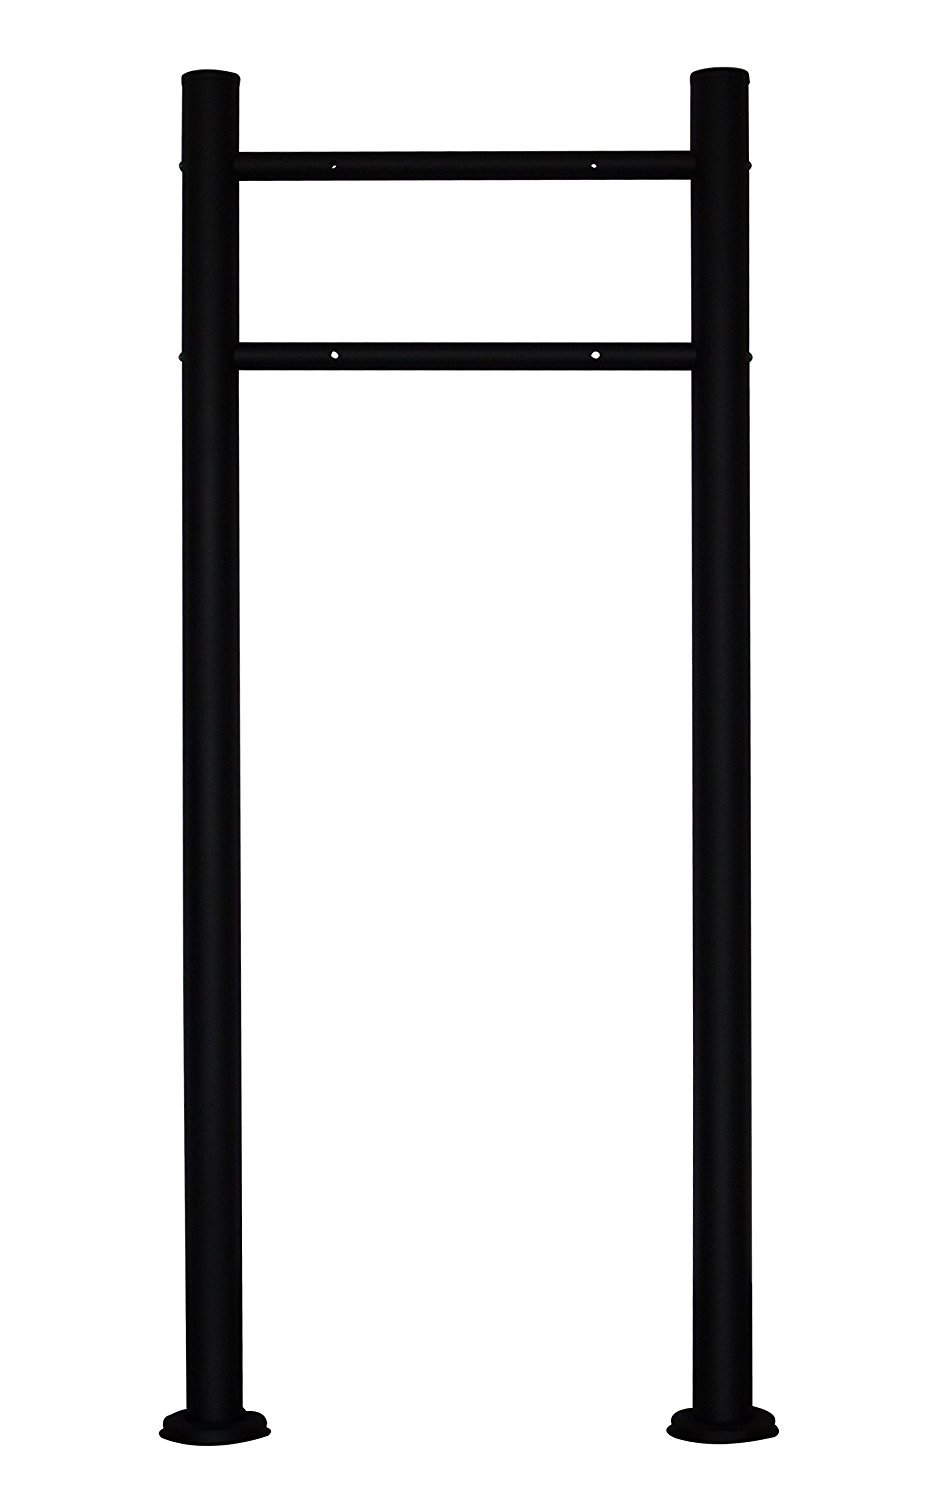 MPB502B AMOYLIMAI Modern Contemporary Urban Style Stainless Steel Painted Black Mailbox Post Letterbox Stand Hardware Kit - REAL STAINLESS STEEL 0.8MM THICK